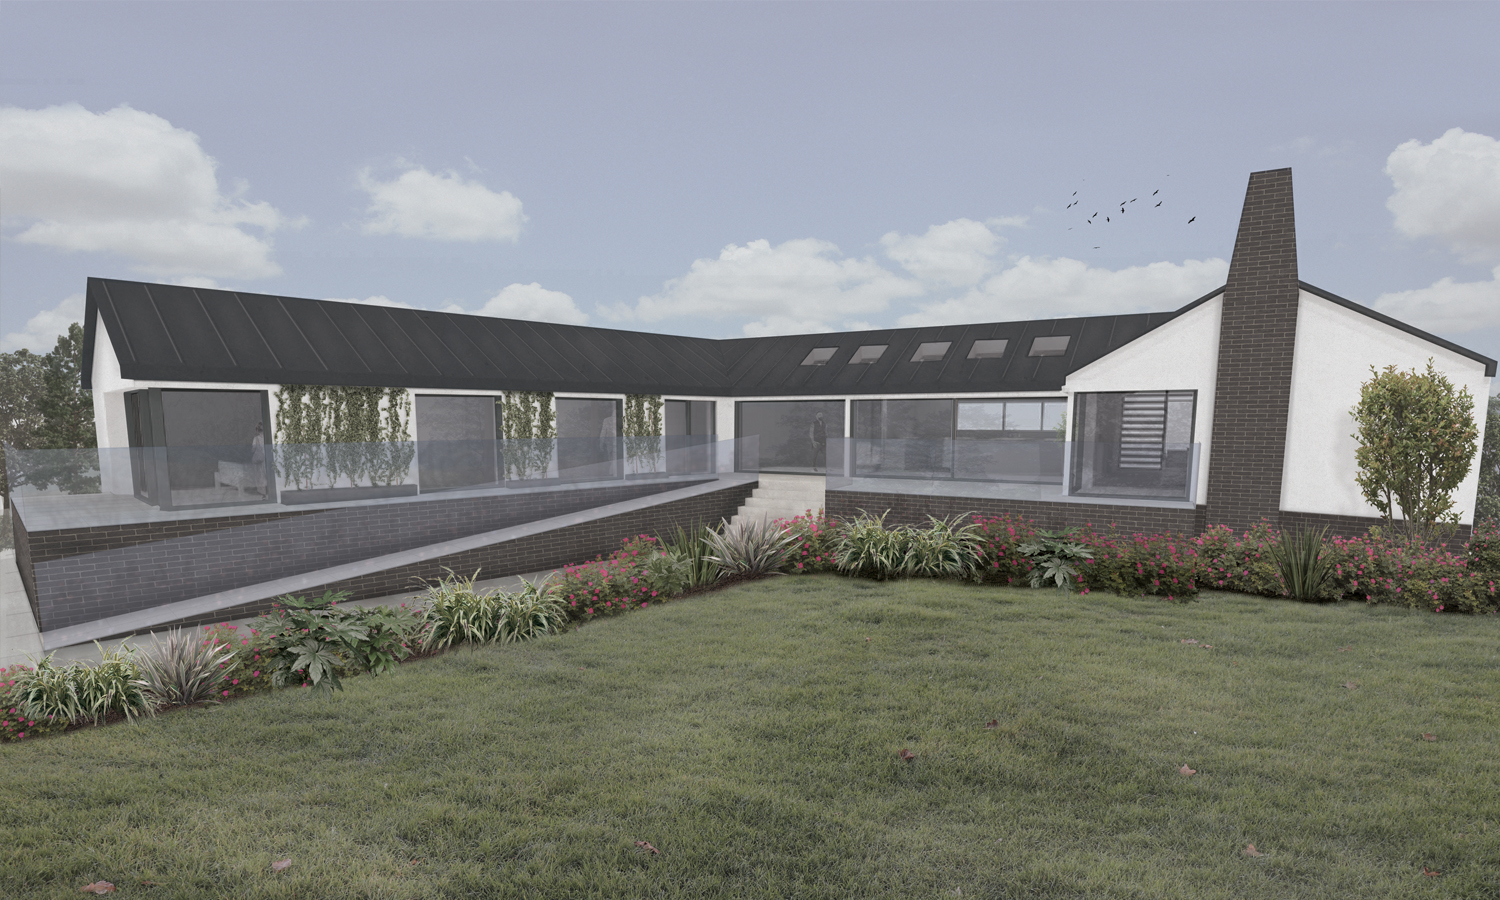 rendering of exterior of riverside homestead with landscaping and glass balustrade to ramp